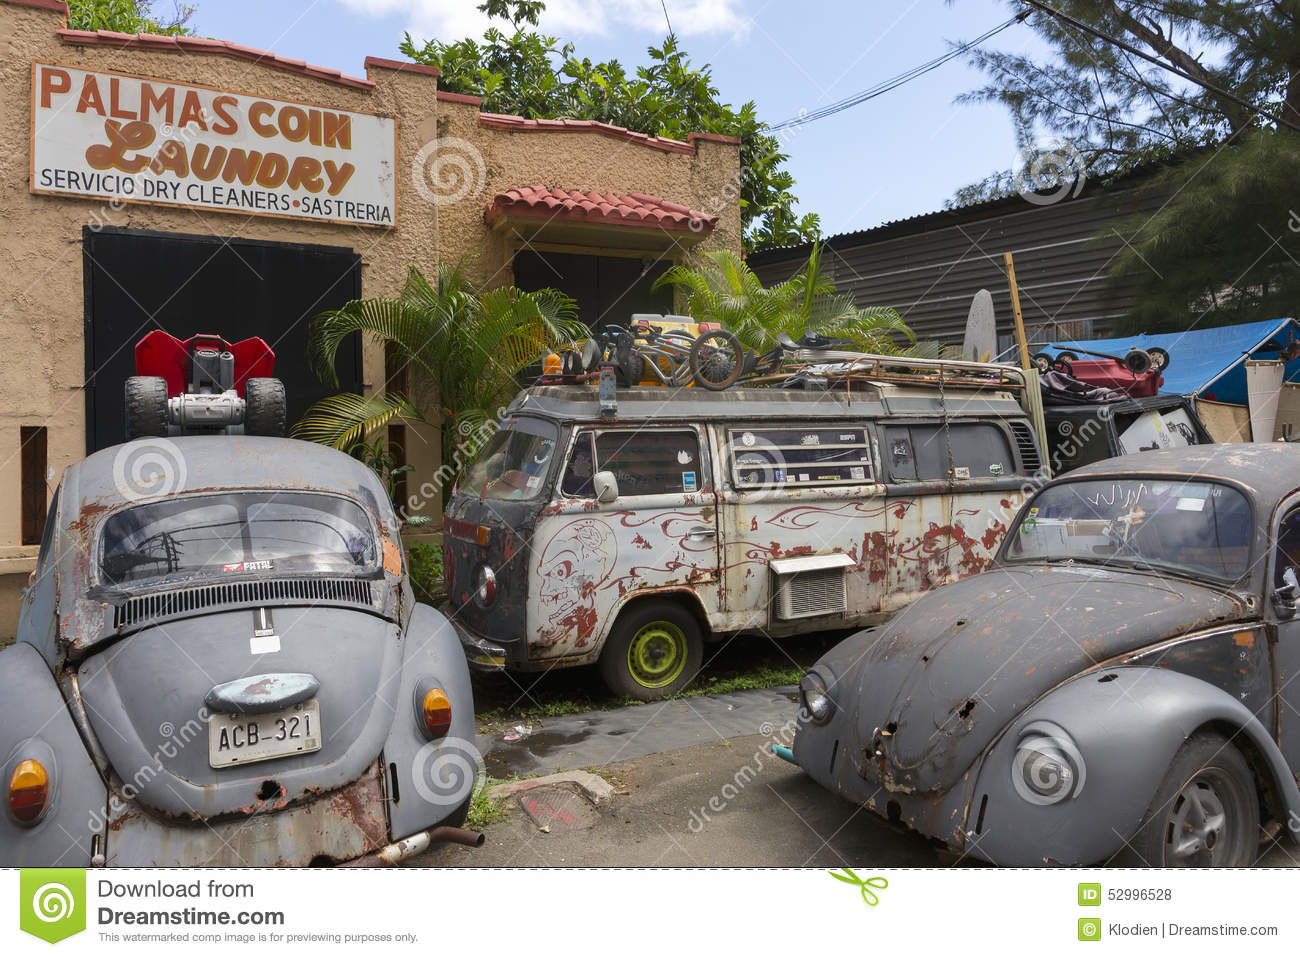 Junk yard with old Volkswagen cars.